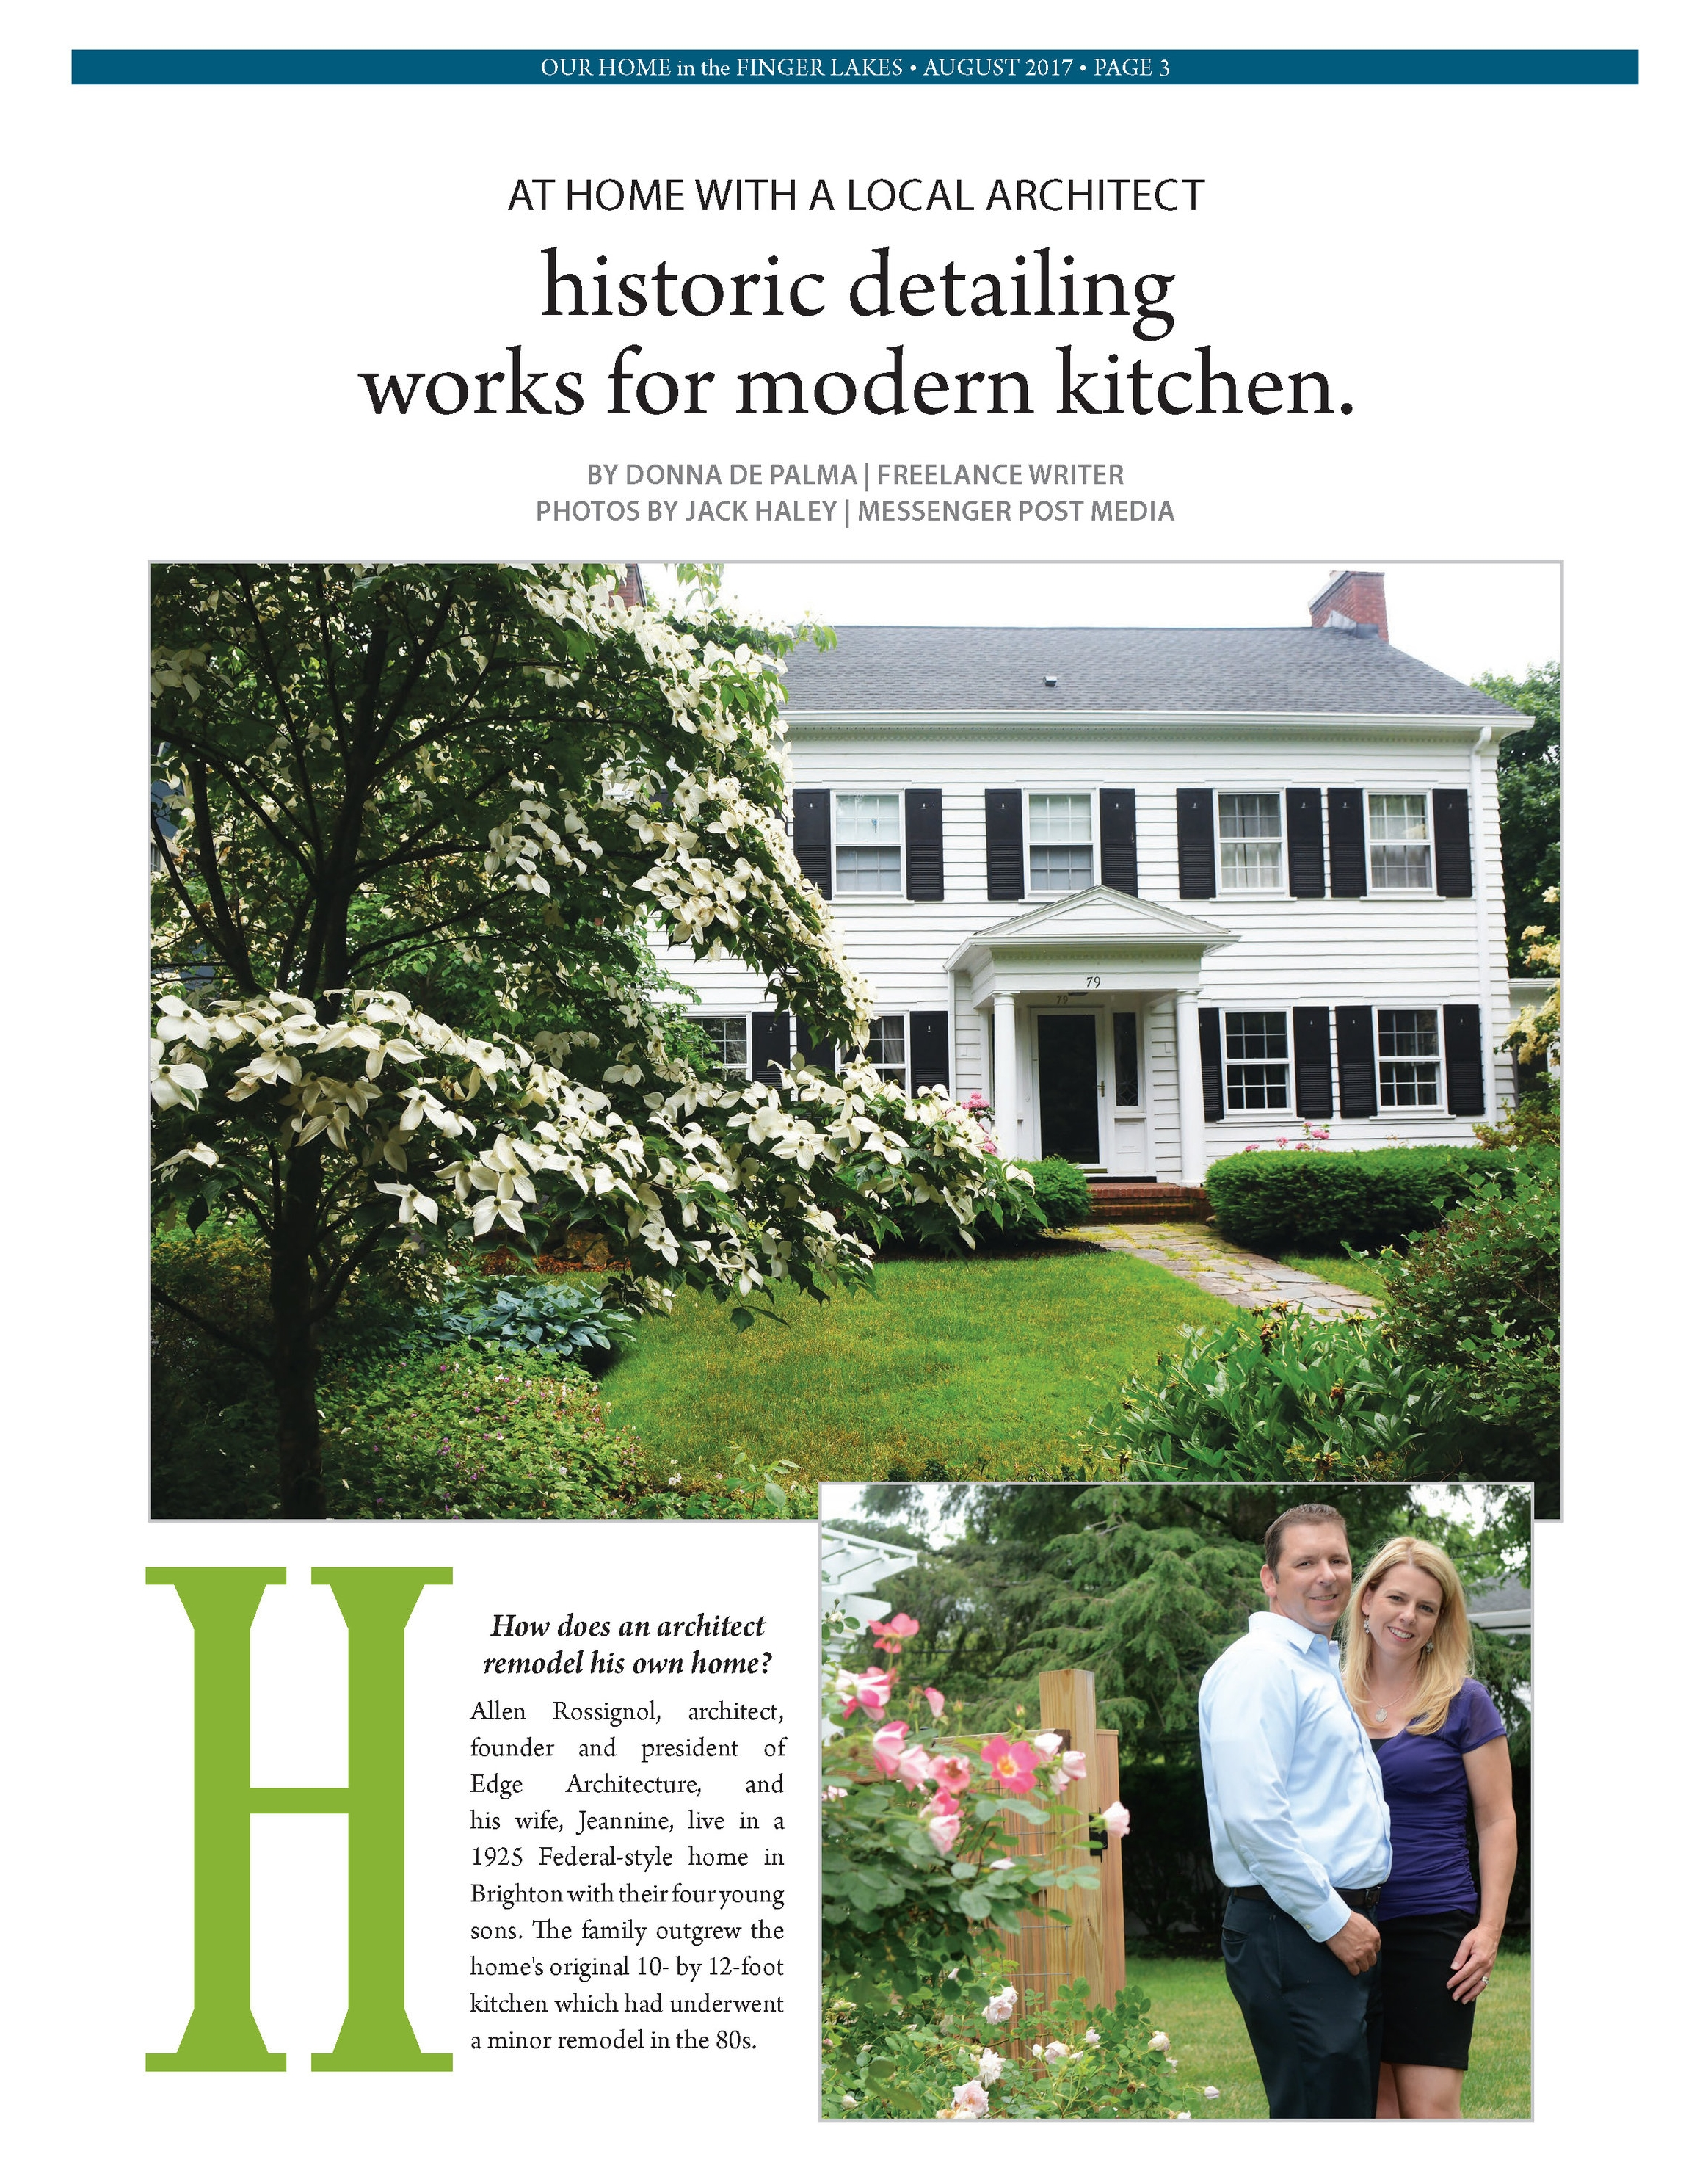 OUR HOME August 2017 - cover image_Page_03.jpg